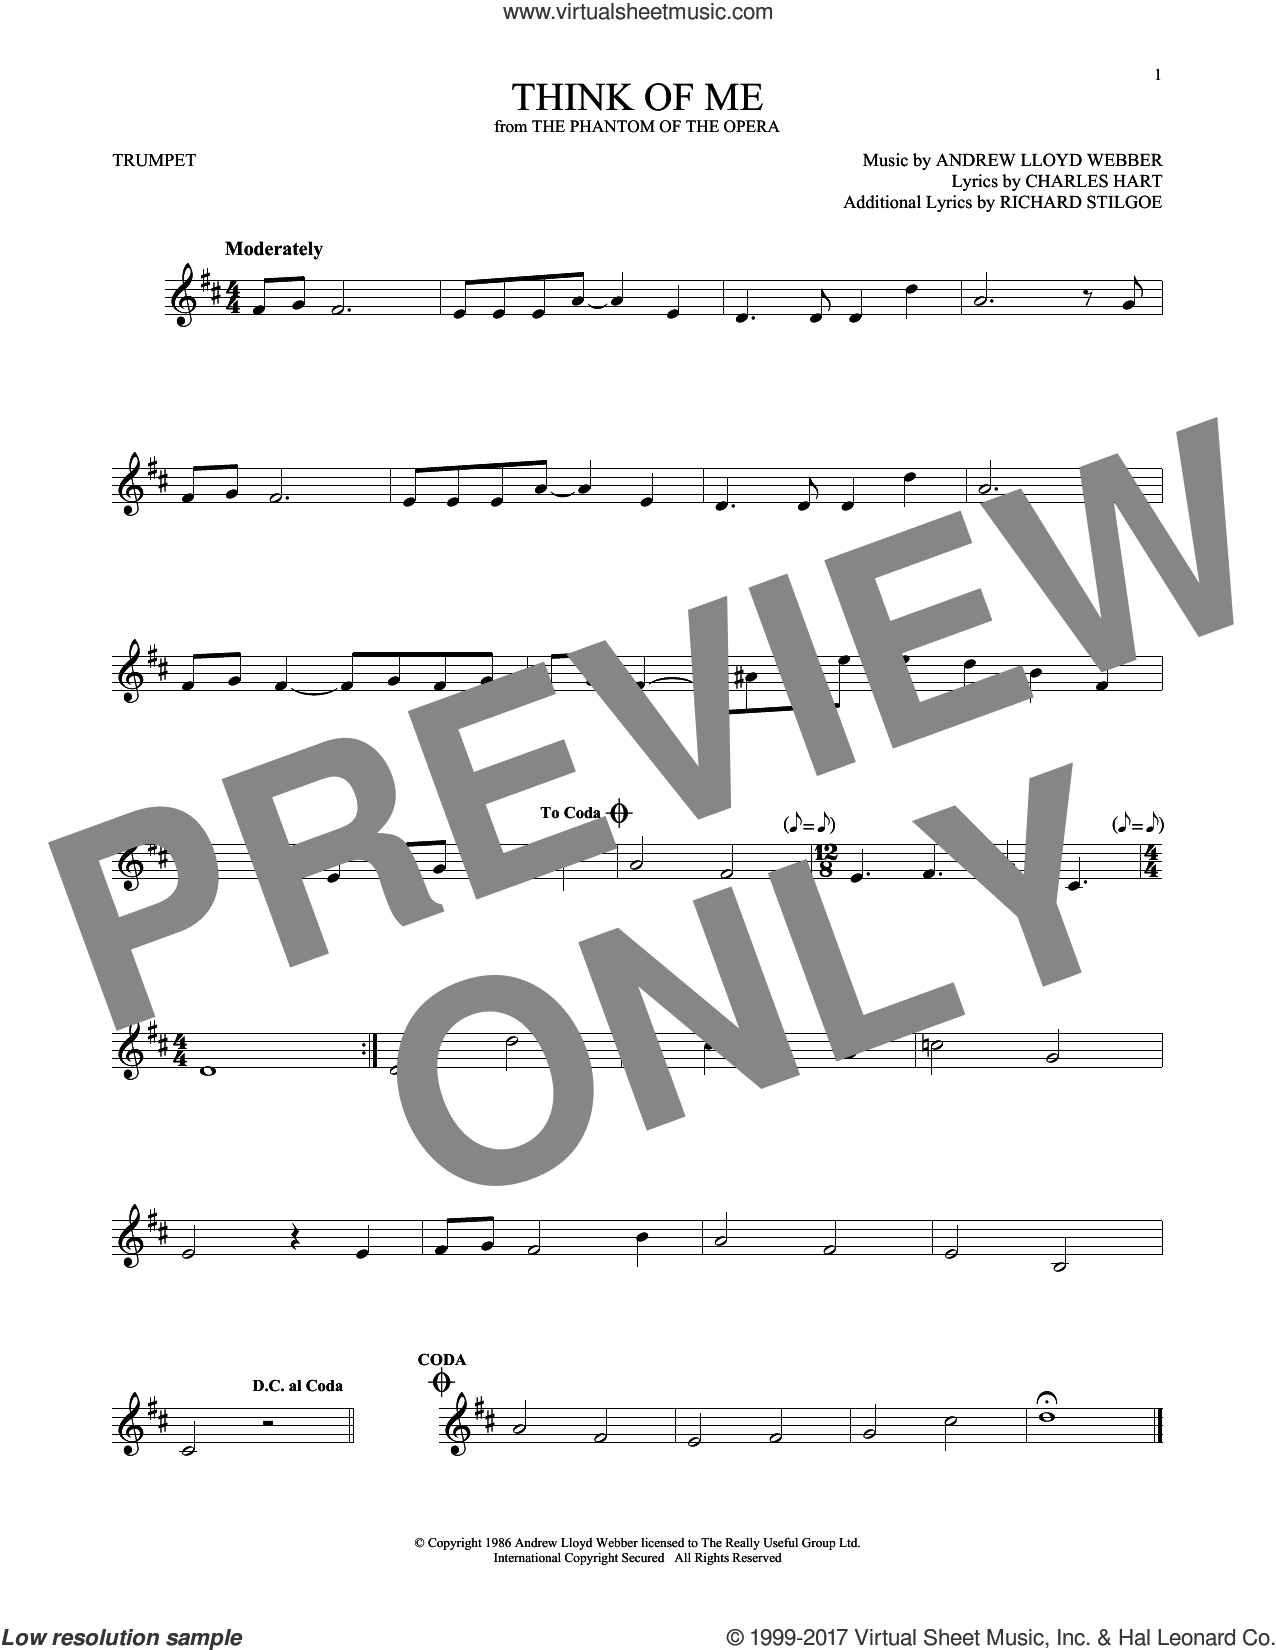 Think Of Me (from The Phantom Of The Opera) sheet music for trumpet solo by Andrew Lloyd Webber, Charles Hart and Richard Stilgoe, intermediate skill level